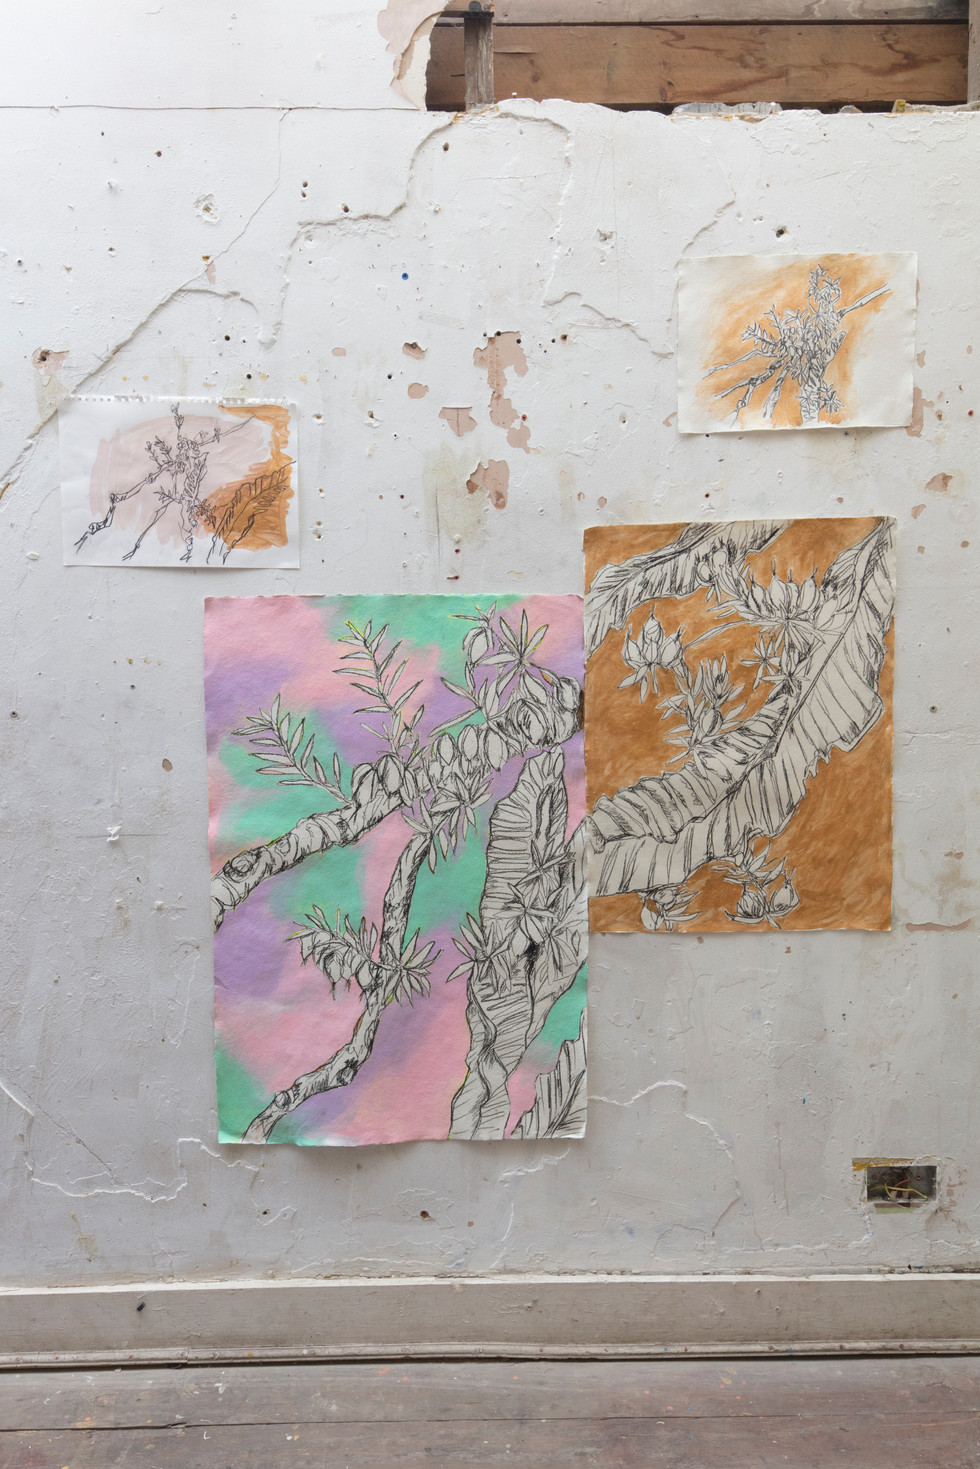 Oma's Garden: Dreams and Entanglement, charcoal and acrylic onrecycled cottons, acrylic,duvet, dirt, 2018